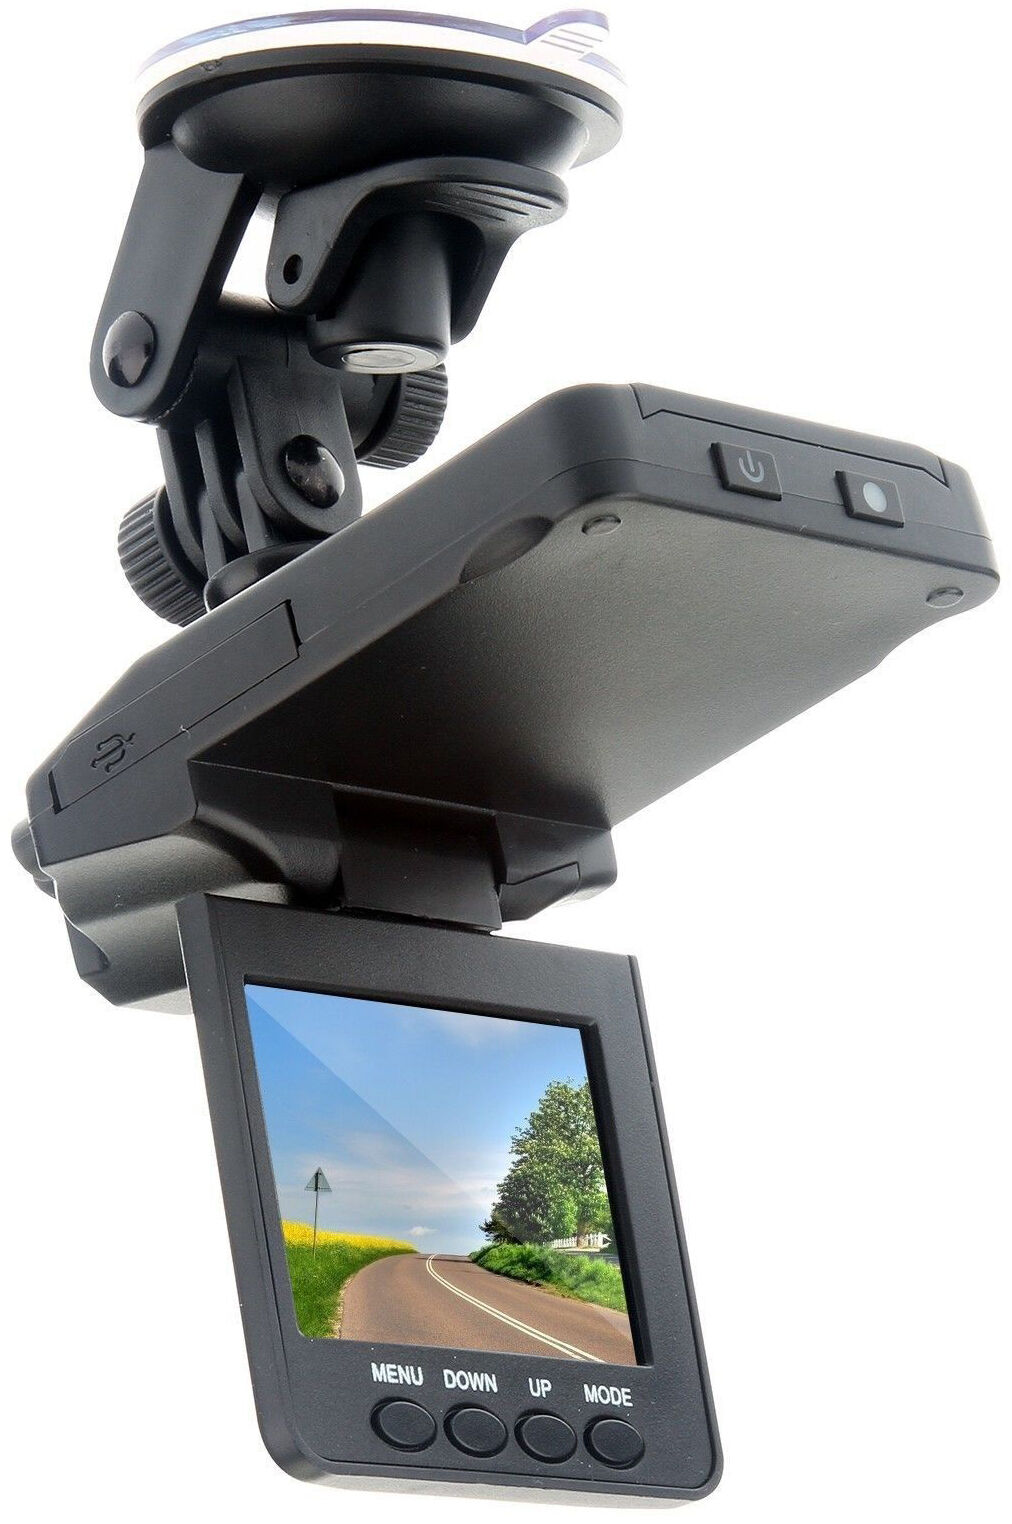 The dvr 027 is a compact user friendly device capable of filming in 720p it has a 120 degree viewing angle a small screen on the camera displays black